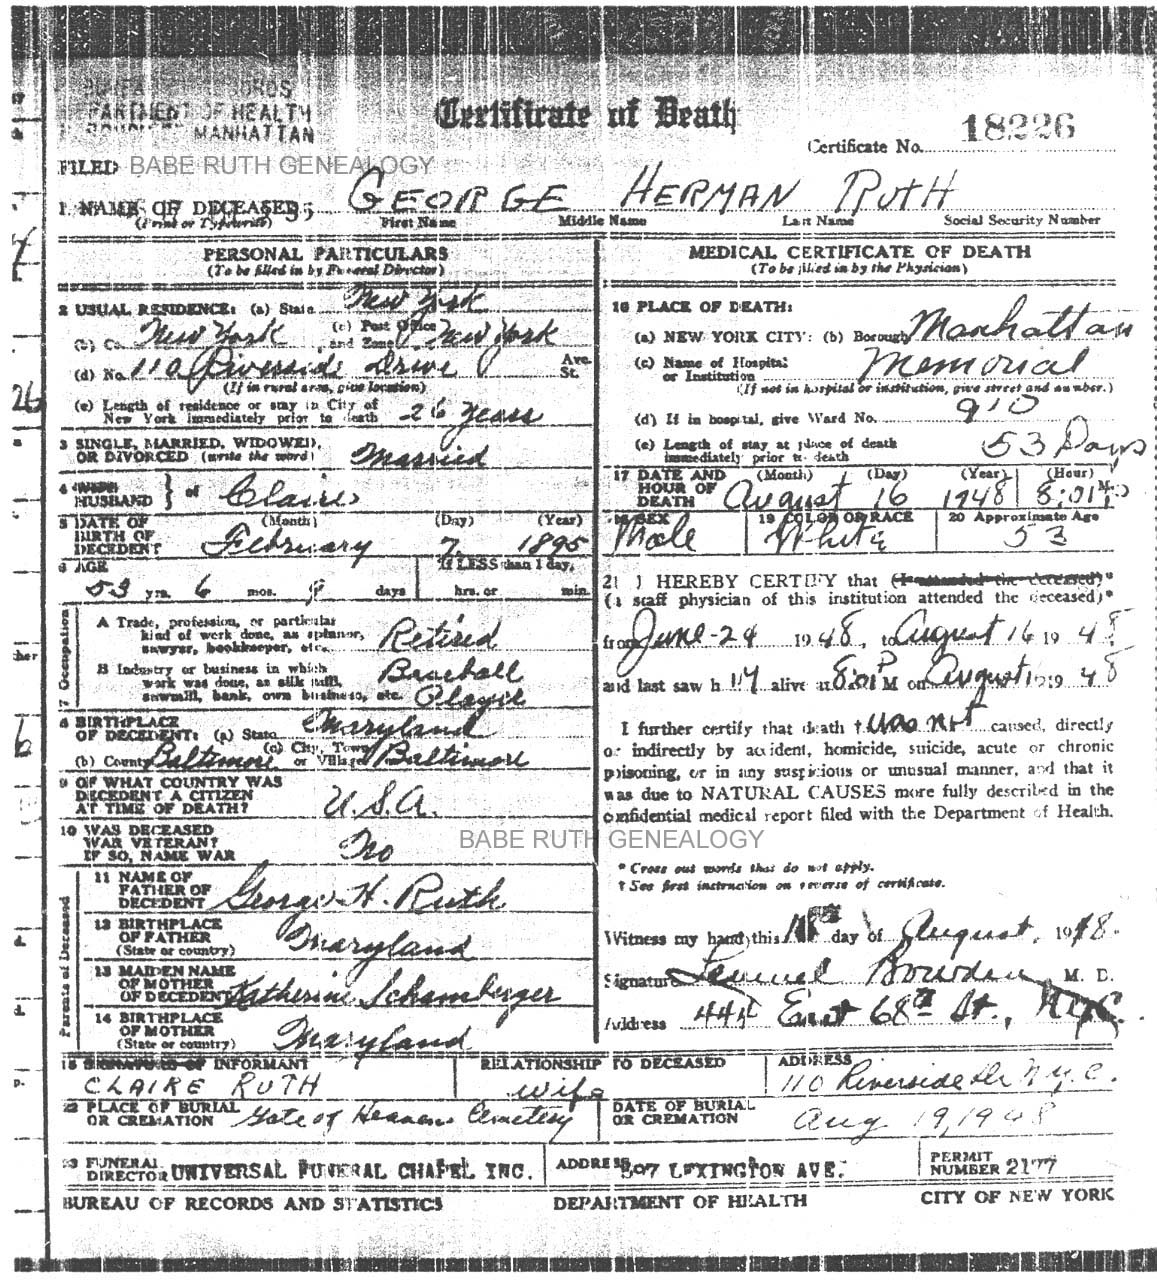 Babe ruth genealogy project records ww i and ww ii registrations 1betcityfo Images